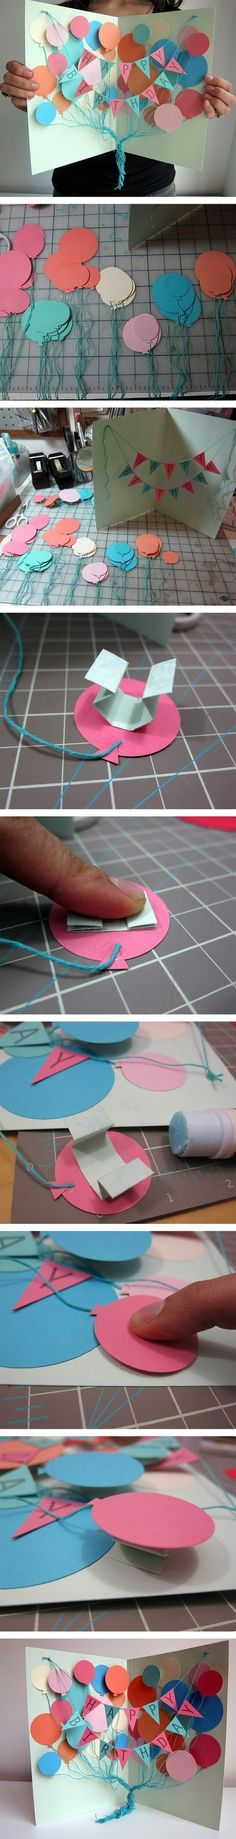 birthday pop up card | http://diy-gift-ideas.blogspot.com